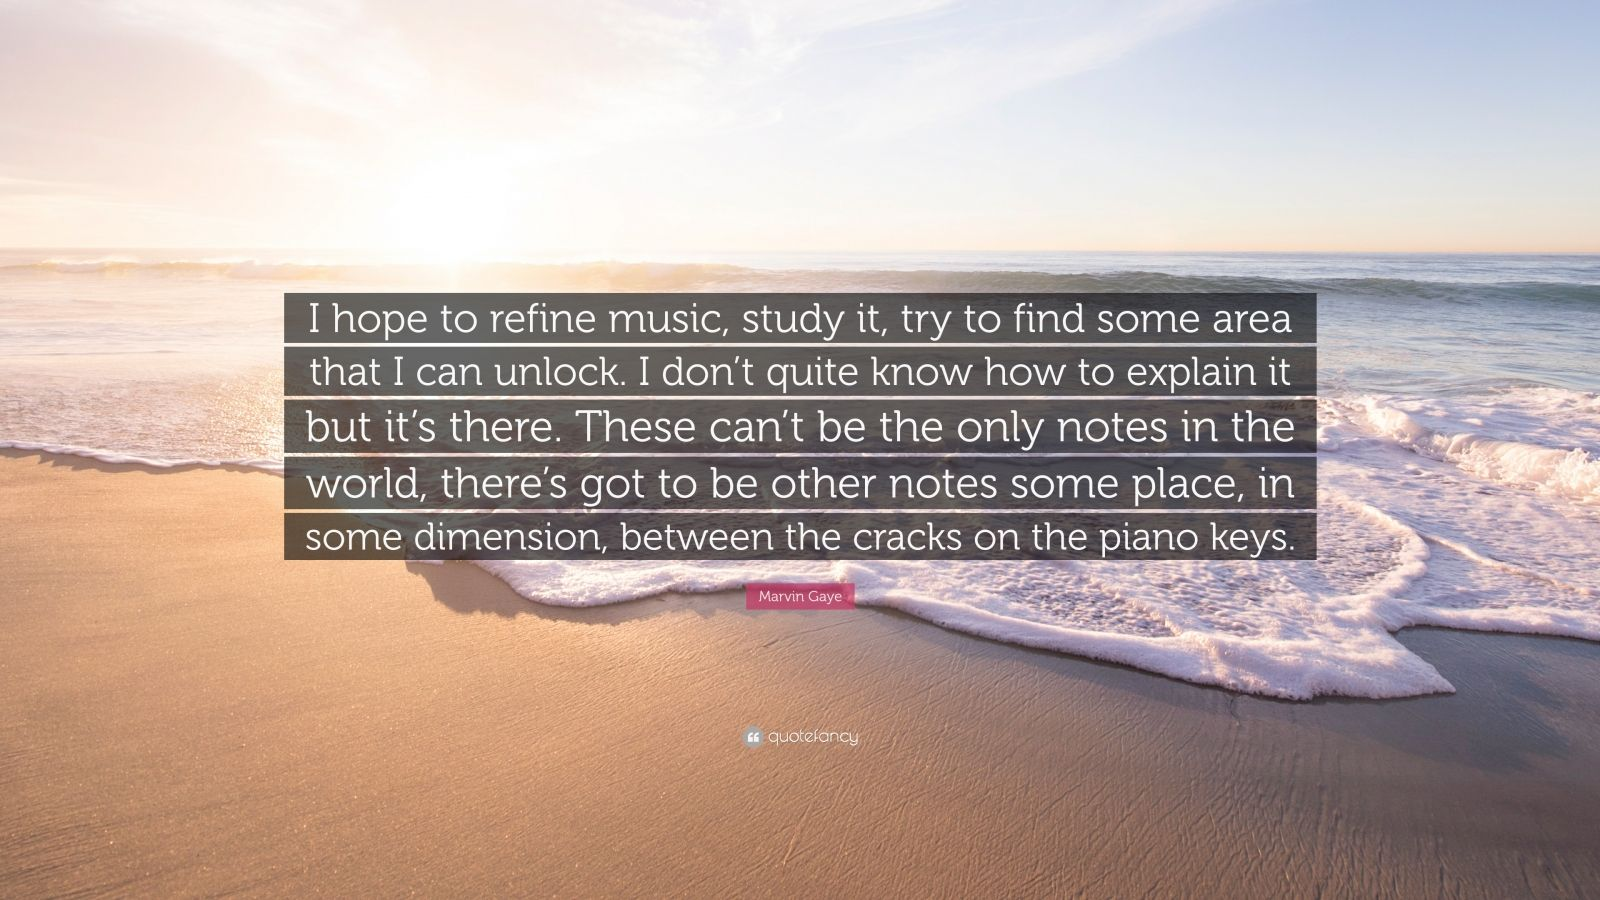 """Marvin Gaye Quote: """"I hope to refine music, study it, try to find some area that I can unlock. I don't quite know how to explain it but it's there. These can't be the only notes in the world, there's got to be other notes some place, in some dimension, between the cracks on the piano keys."""""""